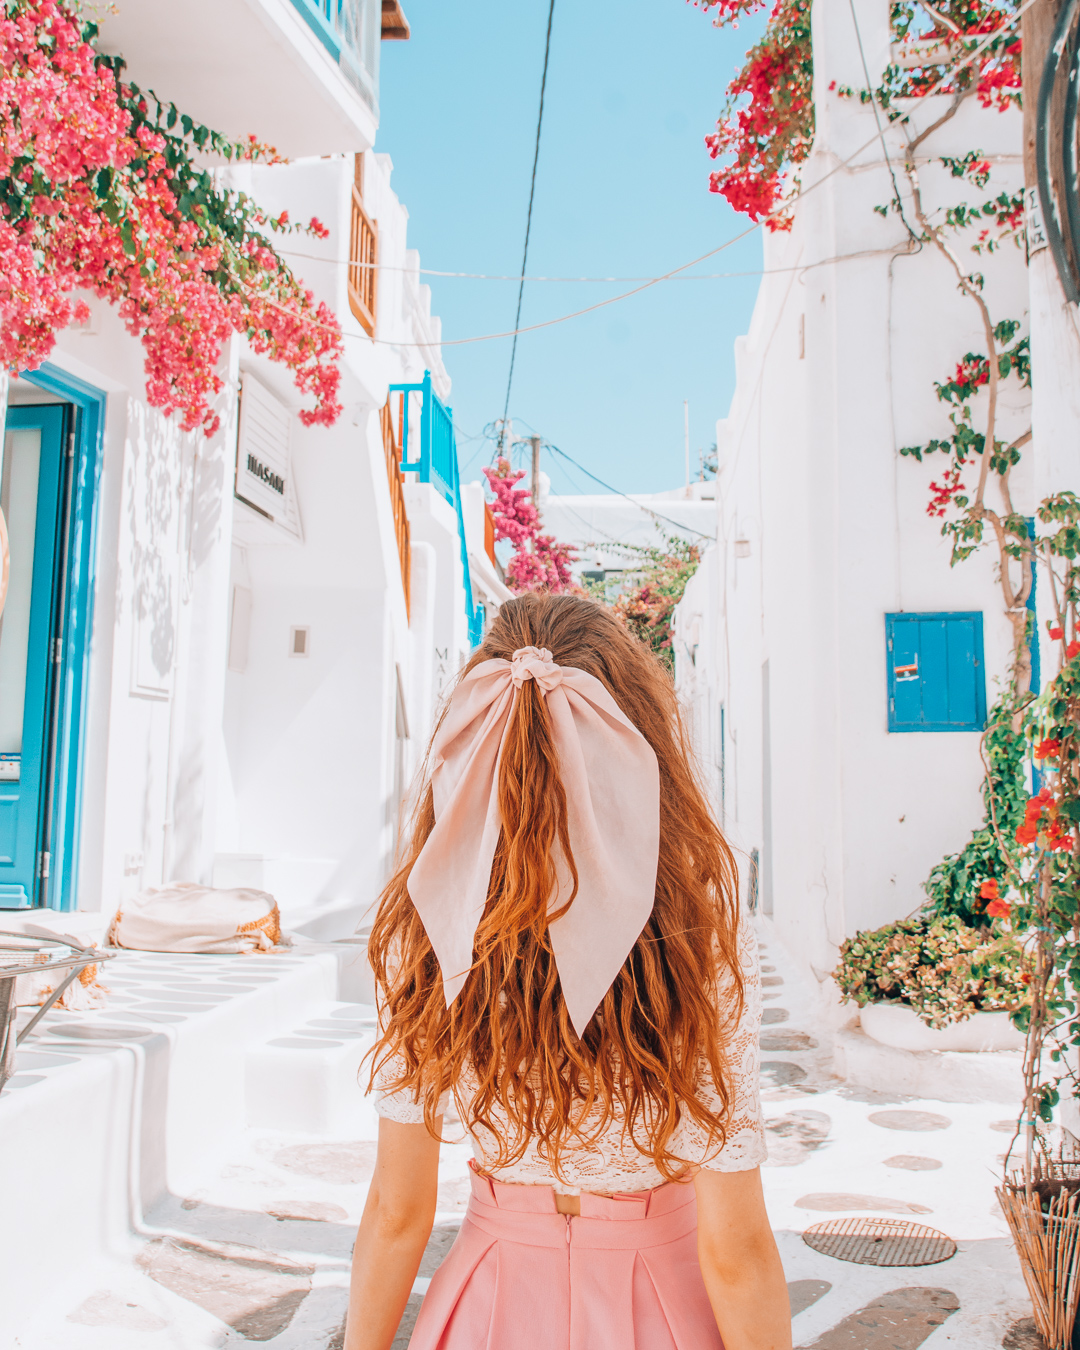 Girl looking at colourful street with flowers in Mykonos